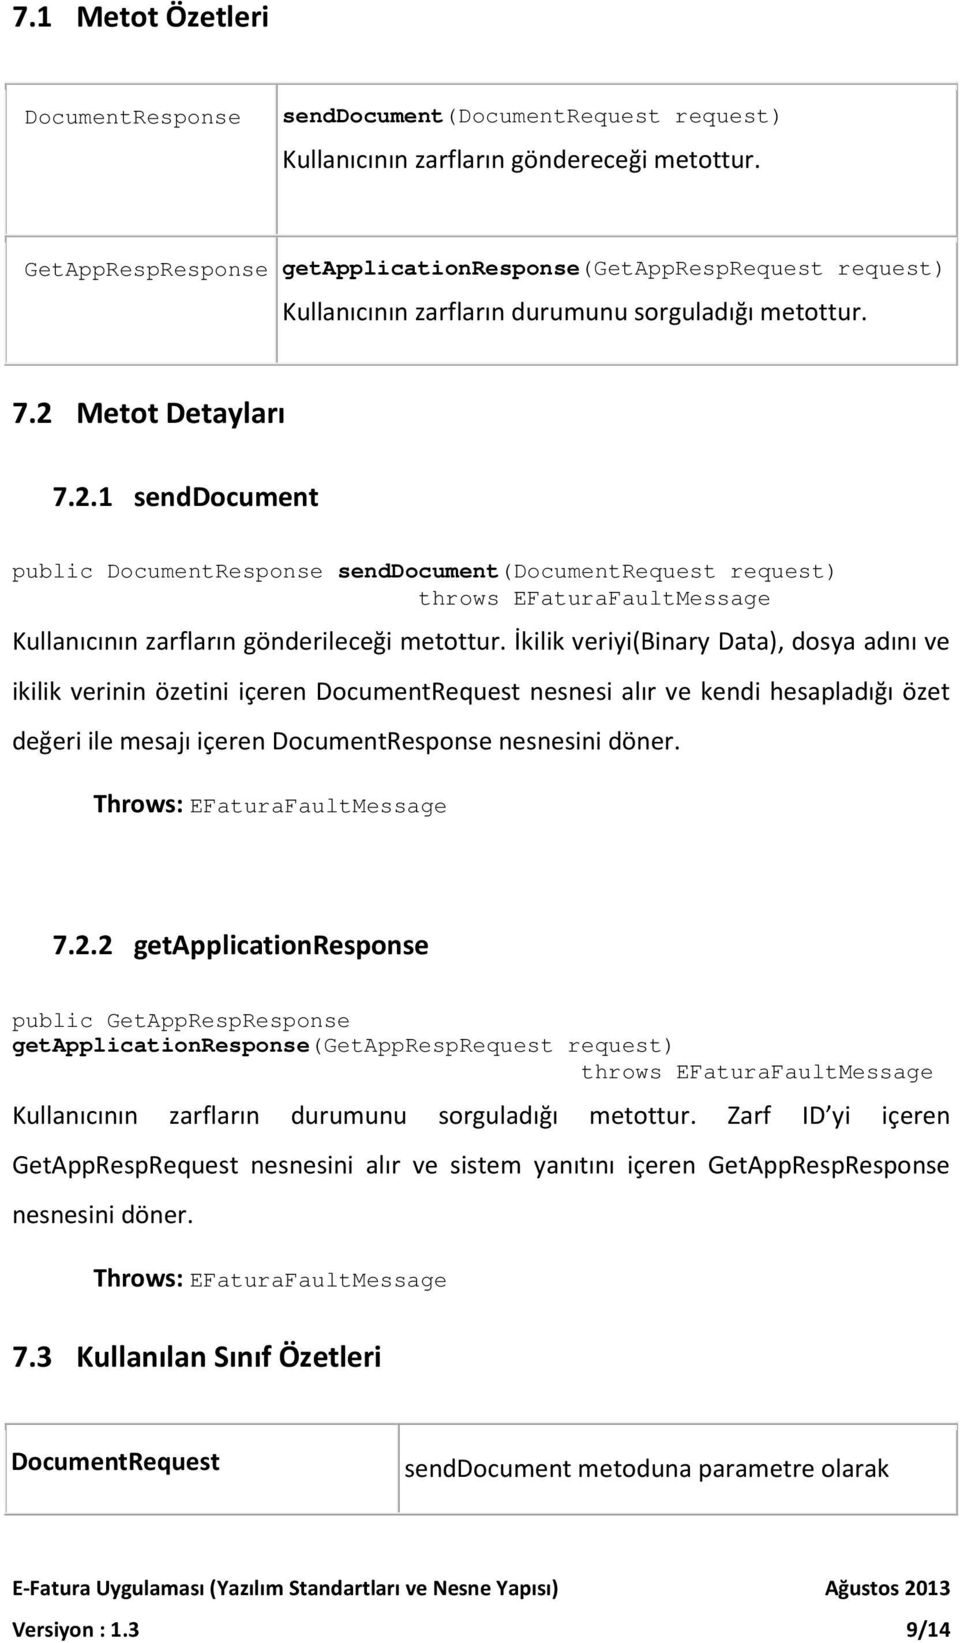 Metot Detayları 7.2.1 senddocument public DocumentResponse senddocument(documentrequest request) throws EFaturaFaultMessage Kullanıcının zarfların gönderileceği metottur.